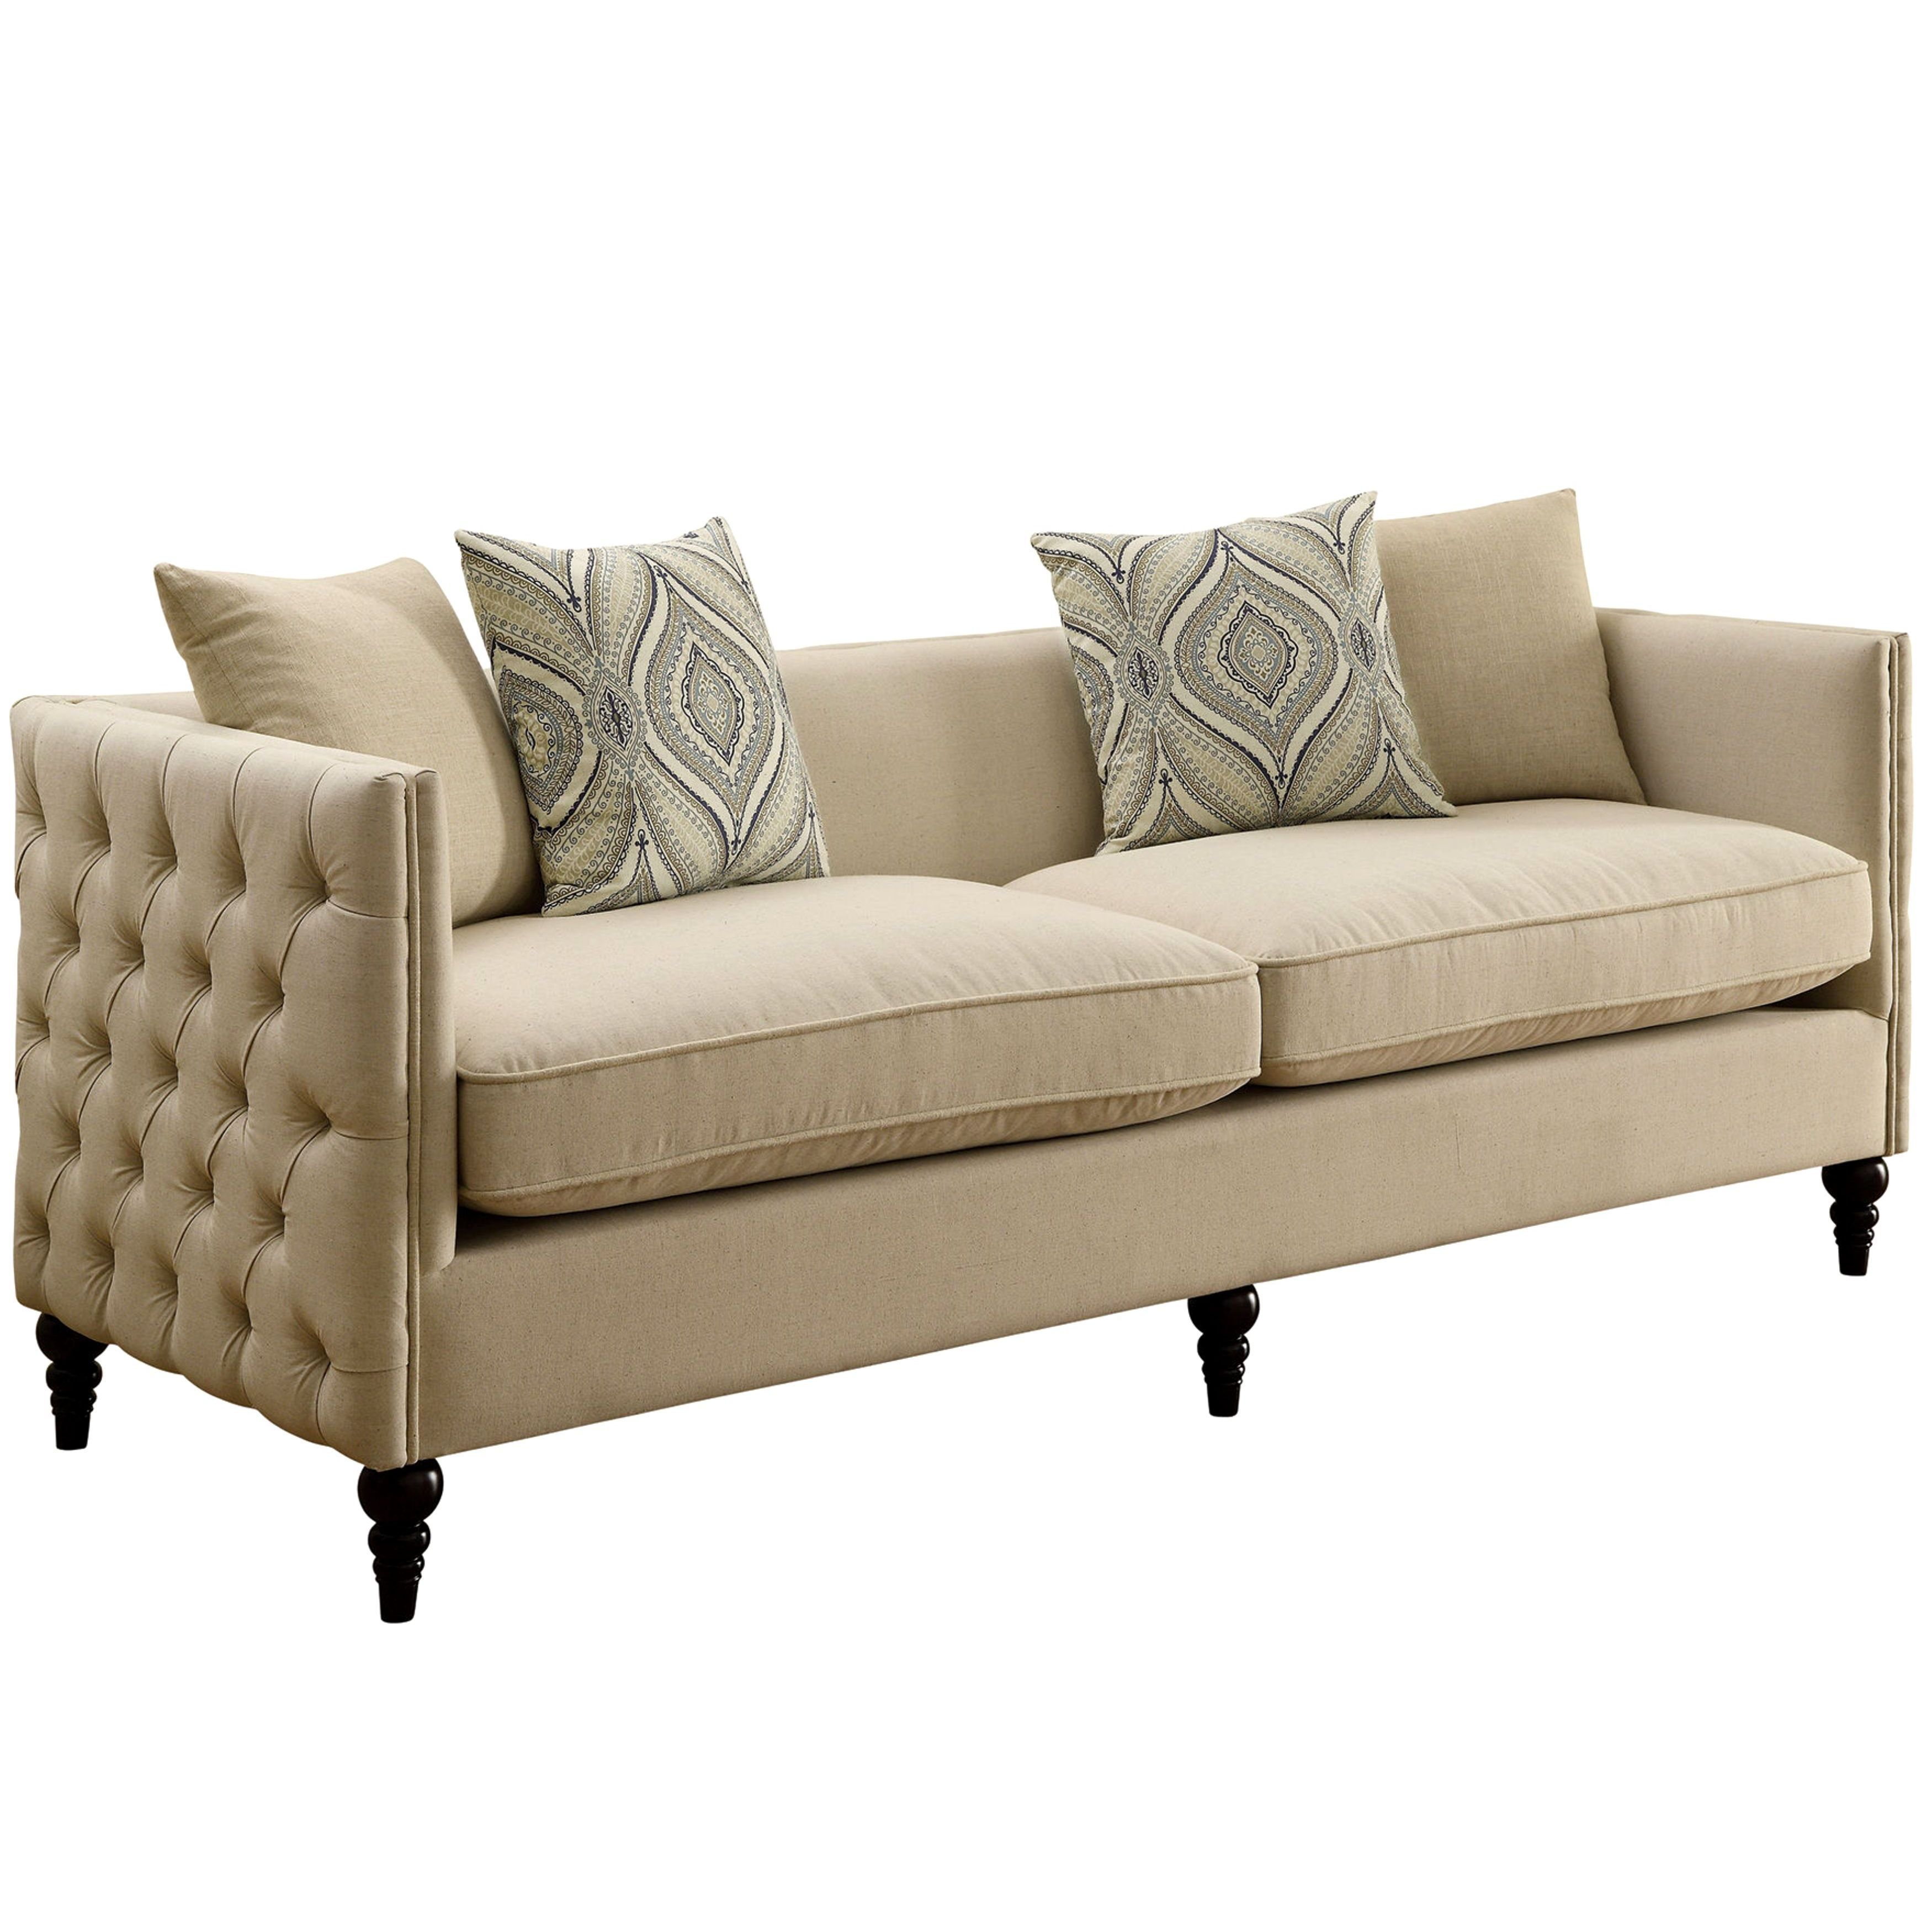 Alexander Mid-Century Living Room Collection with Tufted ...